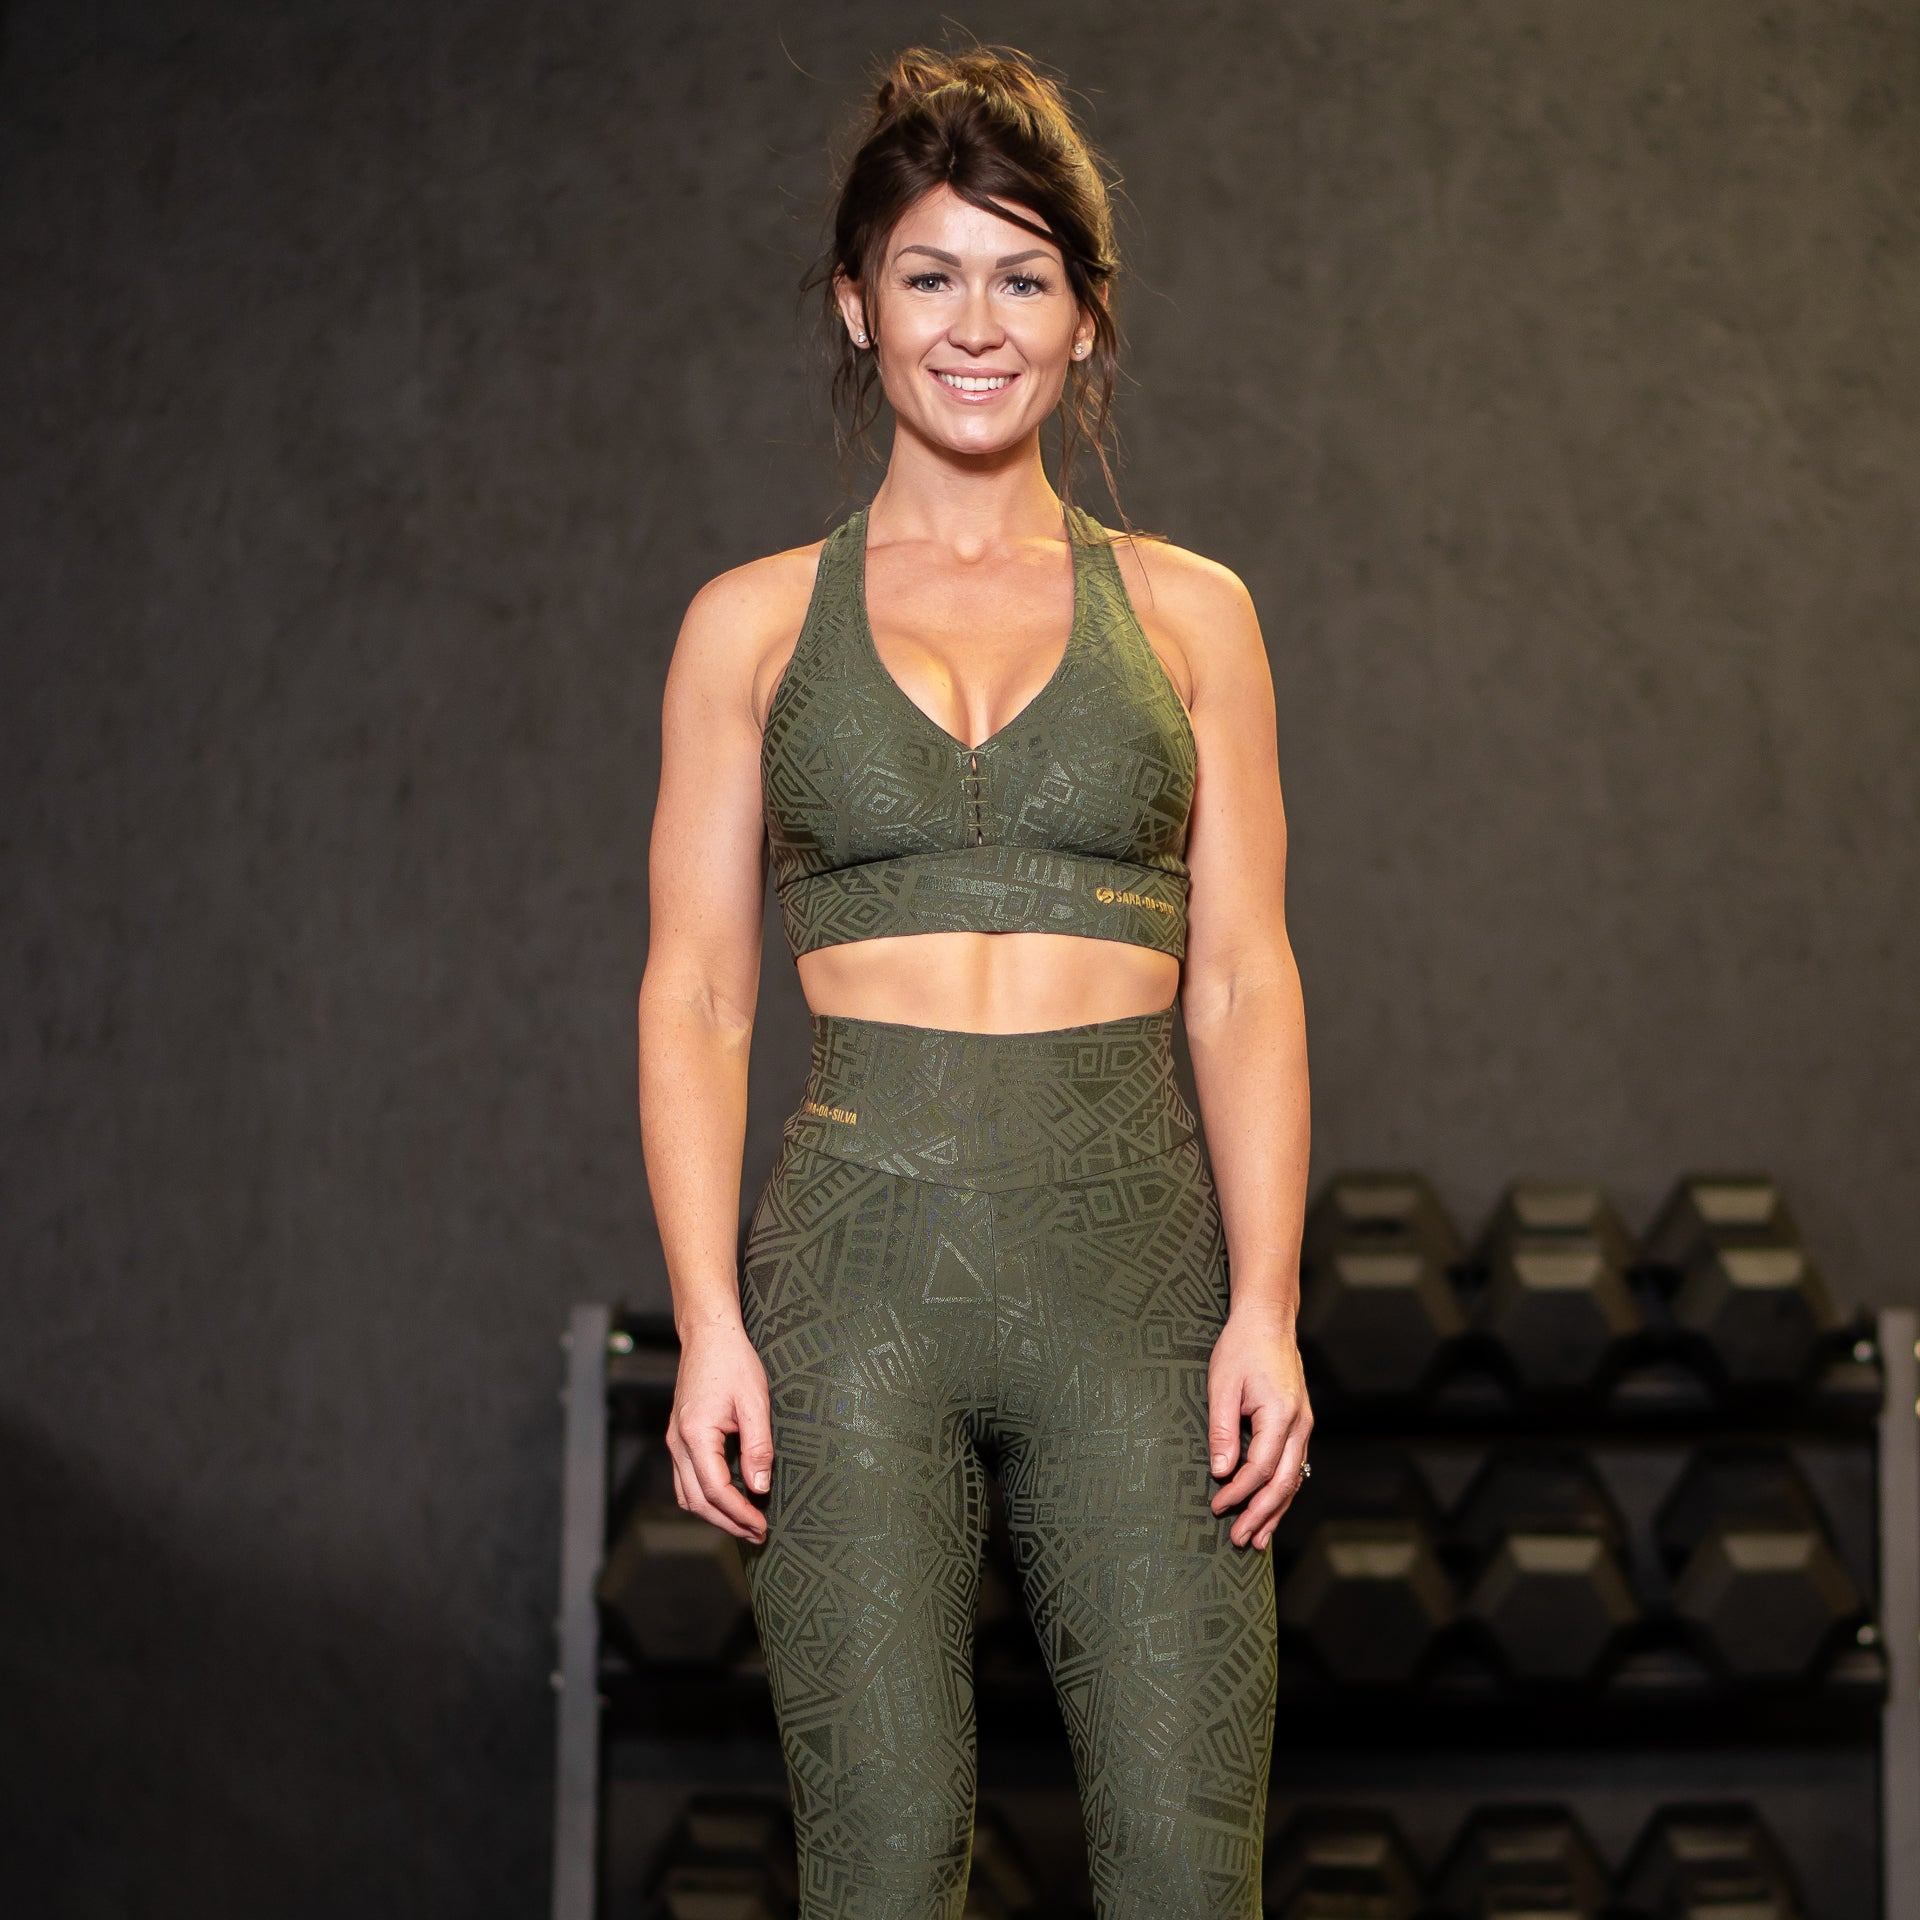 A fit lady with brown hair in a gym wearing khaki green leggings and a sports bra from the Sara Da Silva tribe collection.